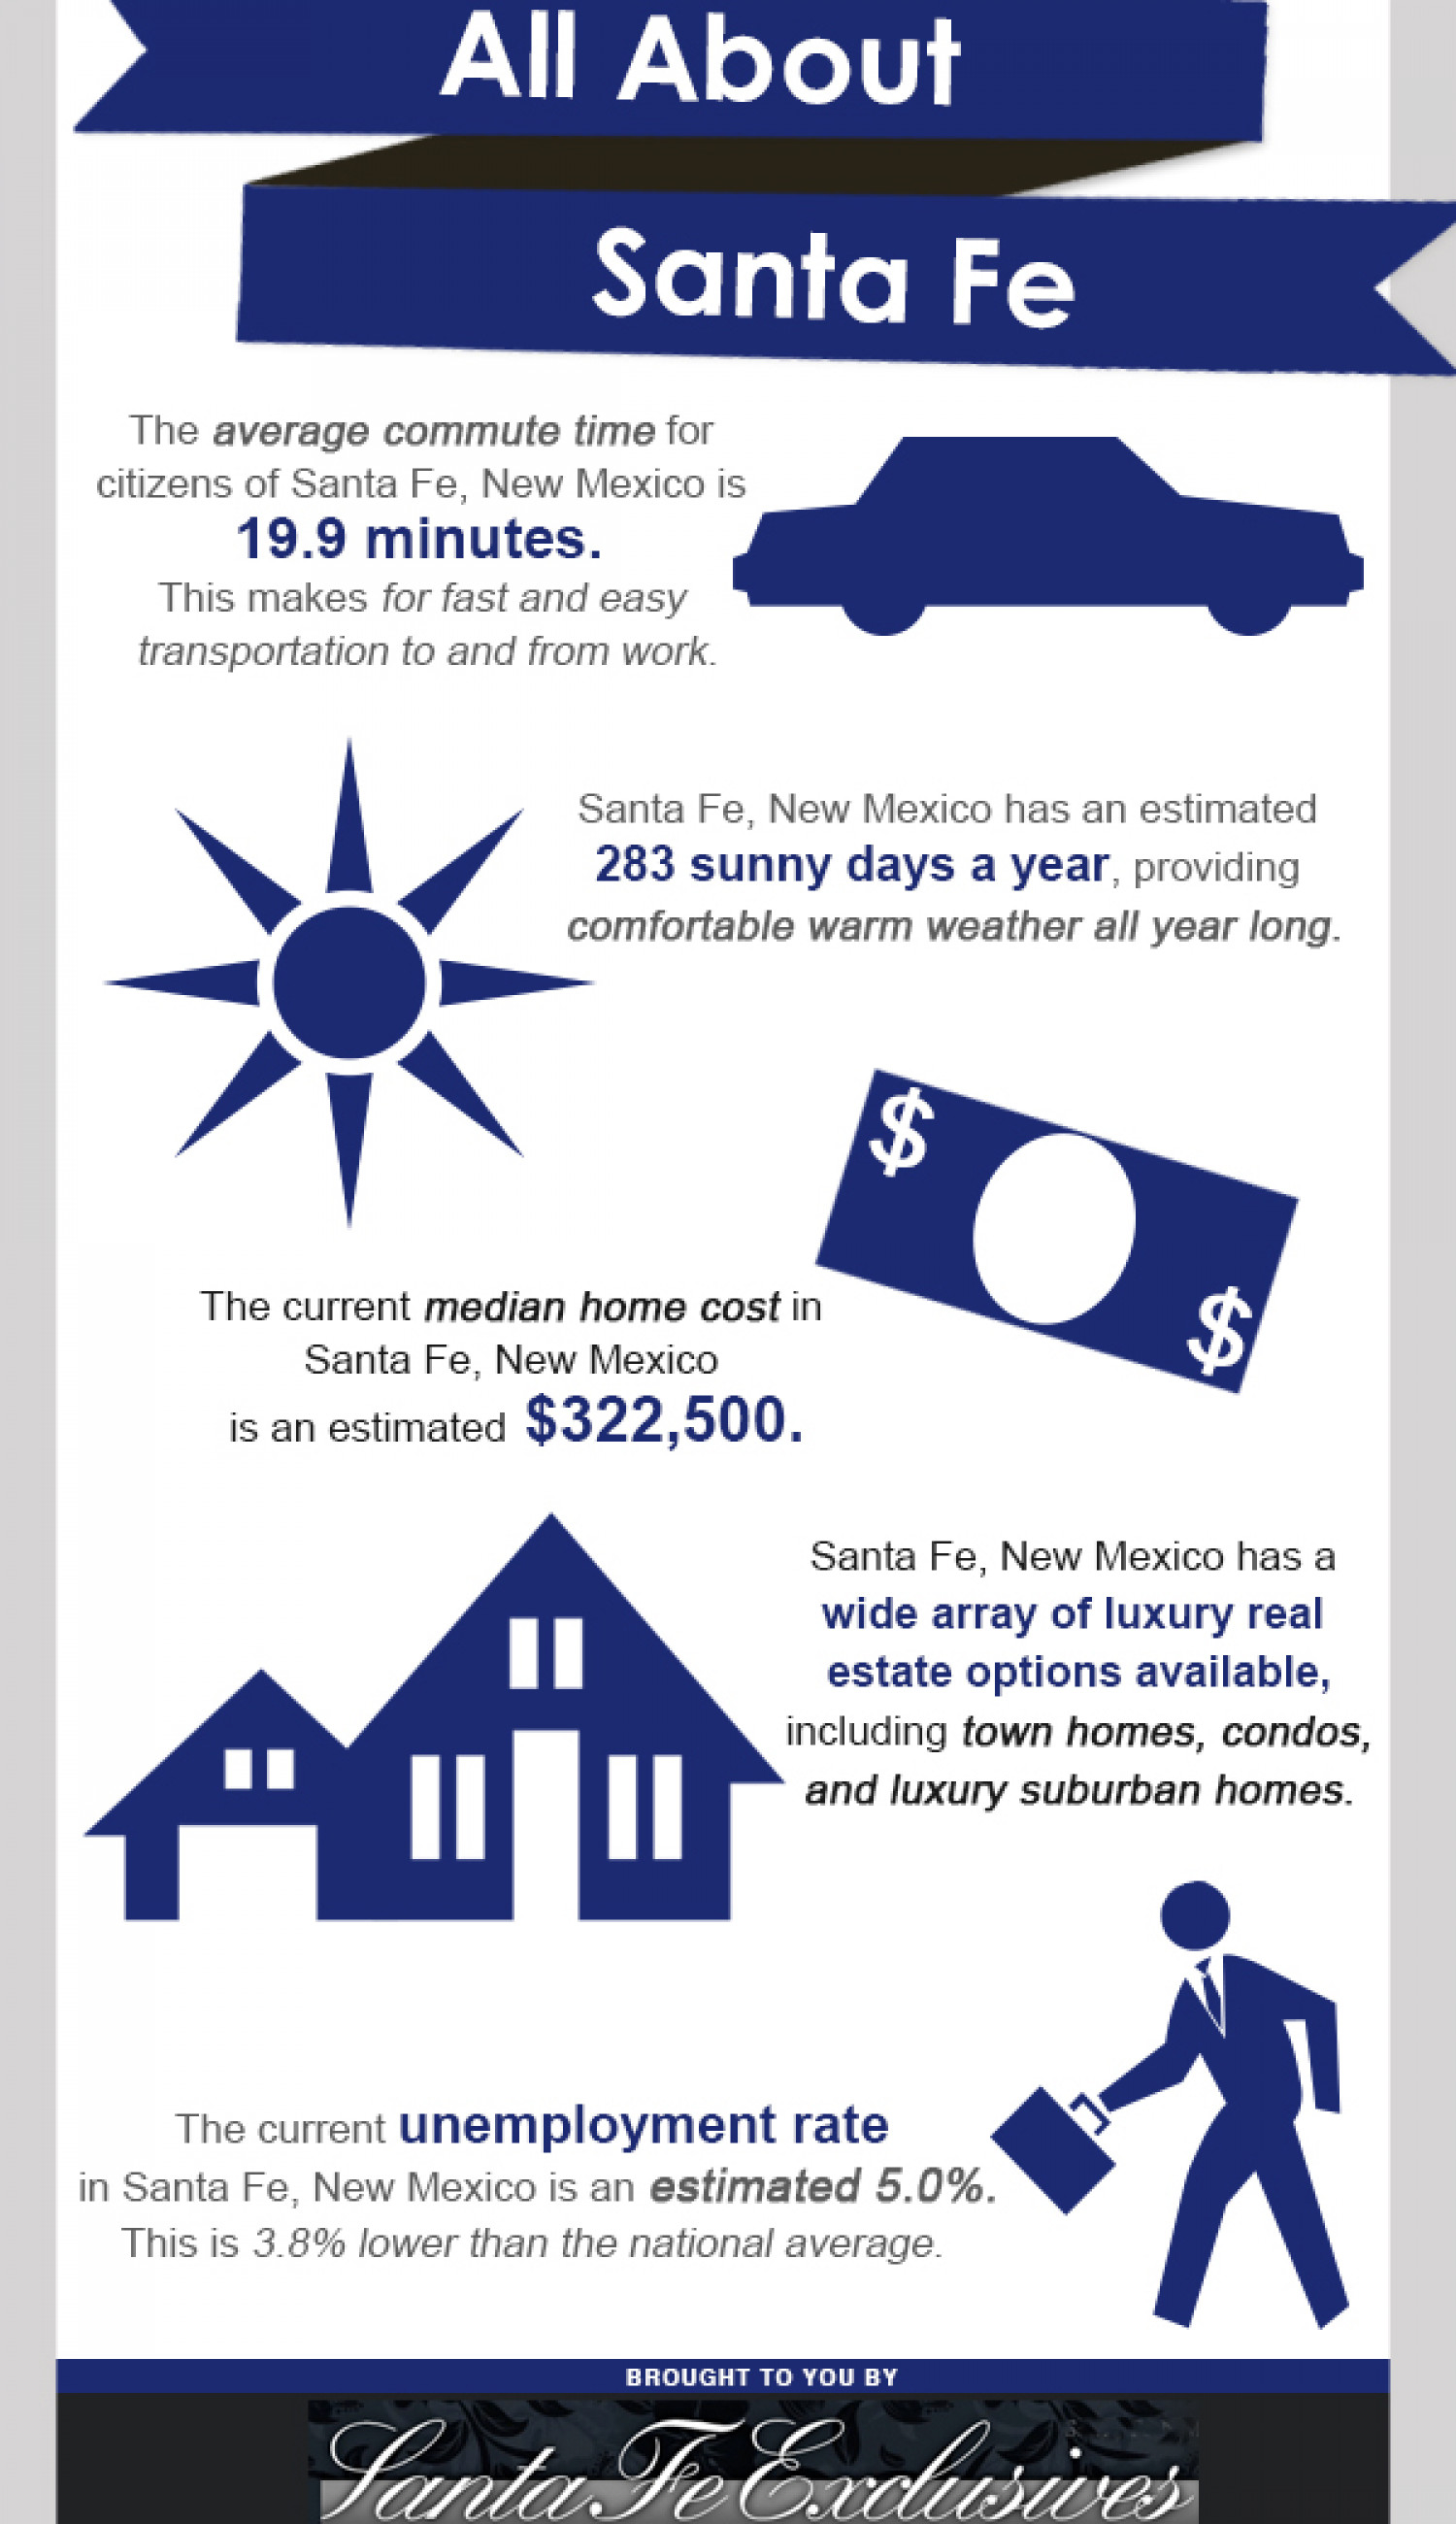 All About Santa Fe Infographic